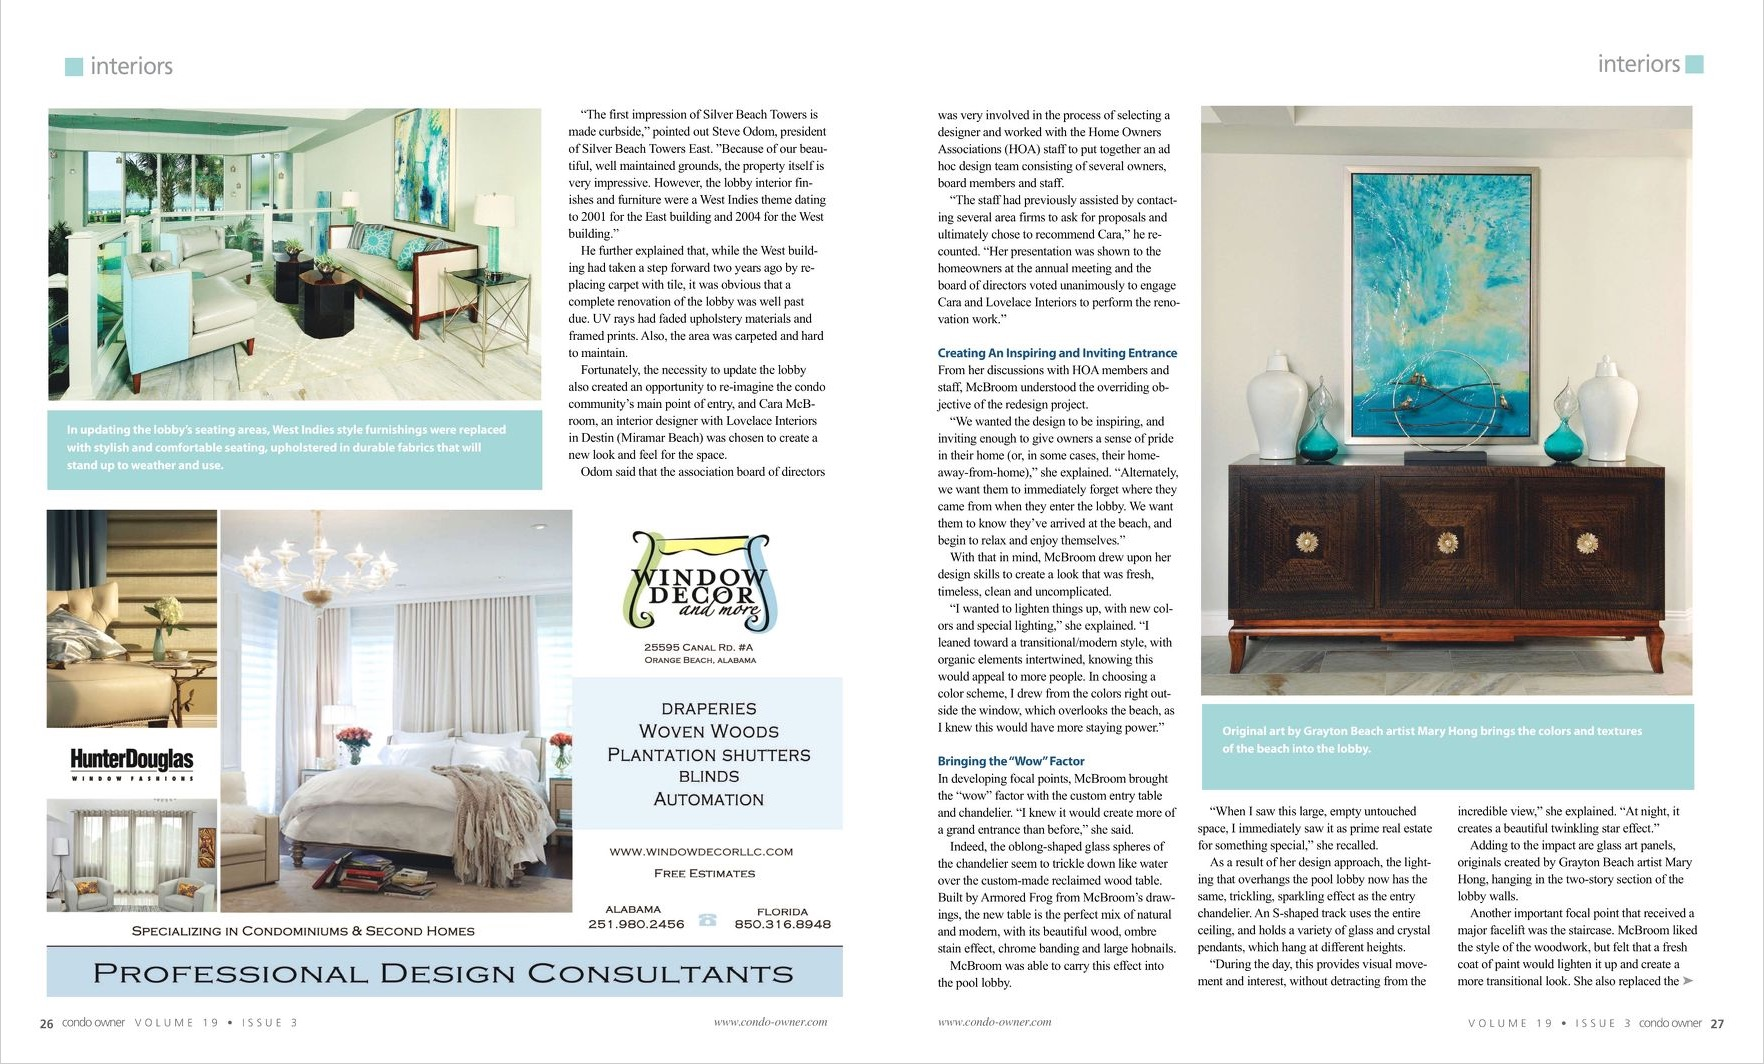 Condo Owner - Summer 2015 - Lovelace Interiors